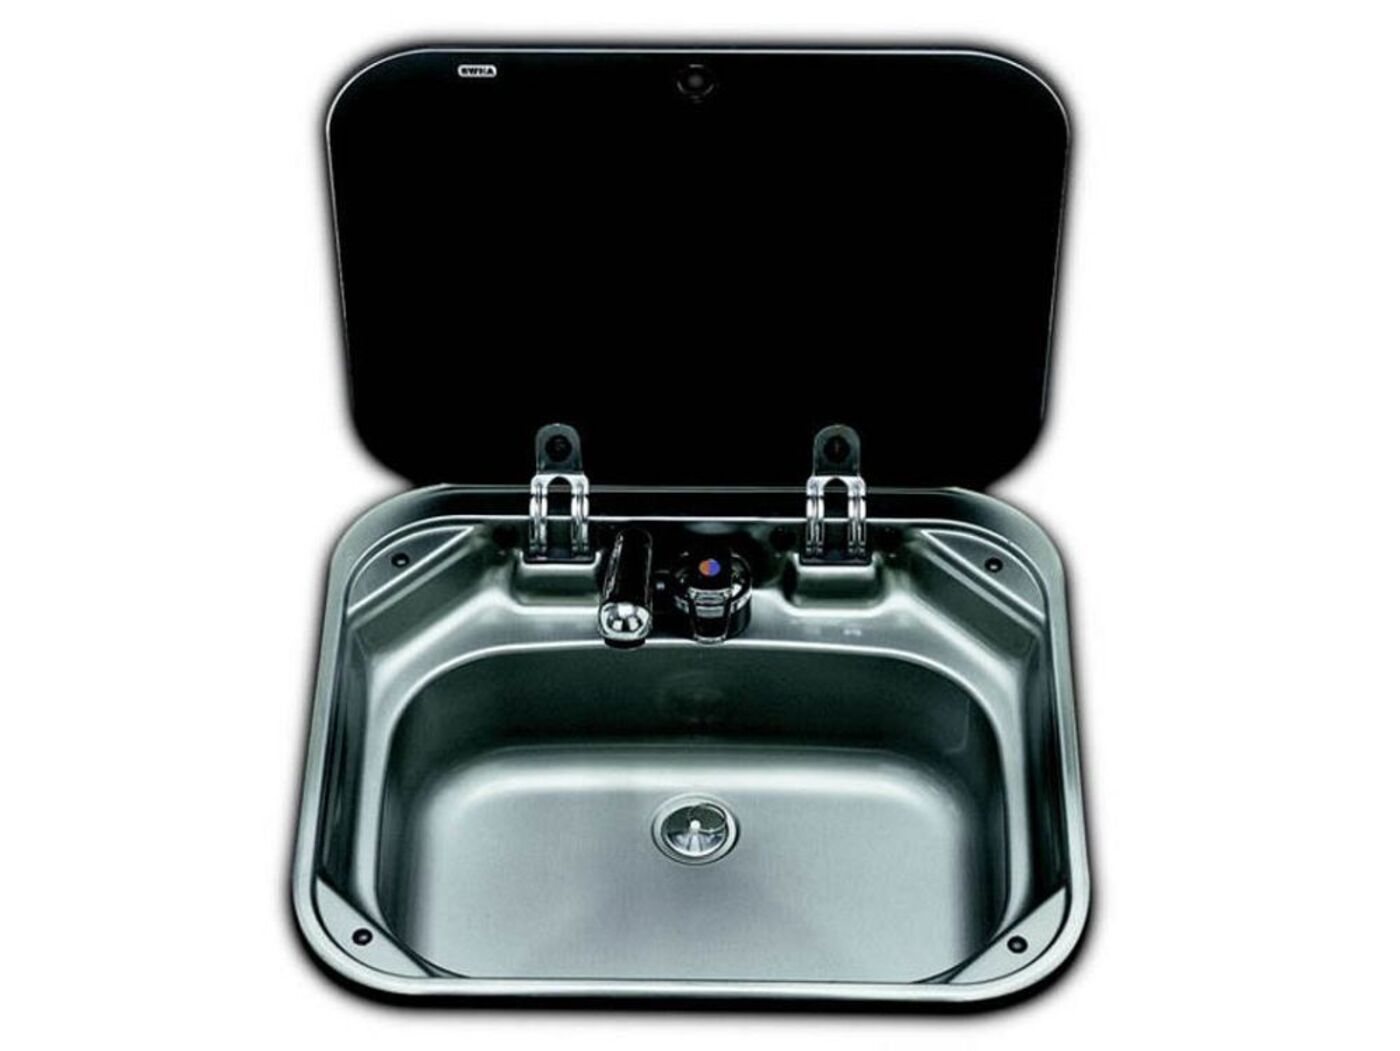 Smev 8005 sink with glass lid homestad caravans - Caravan kitchen sink ...